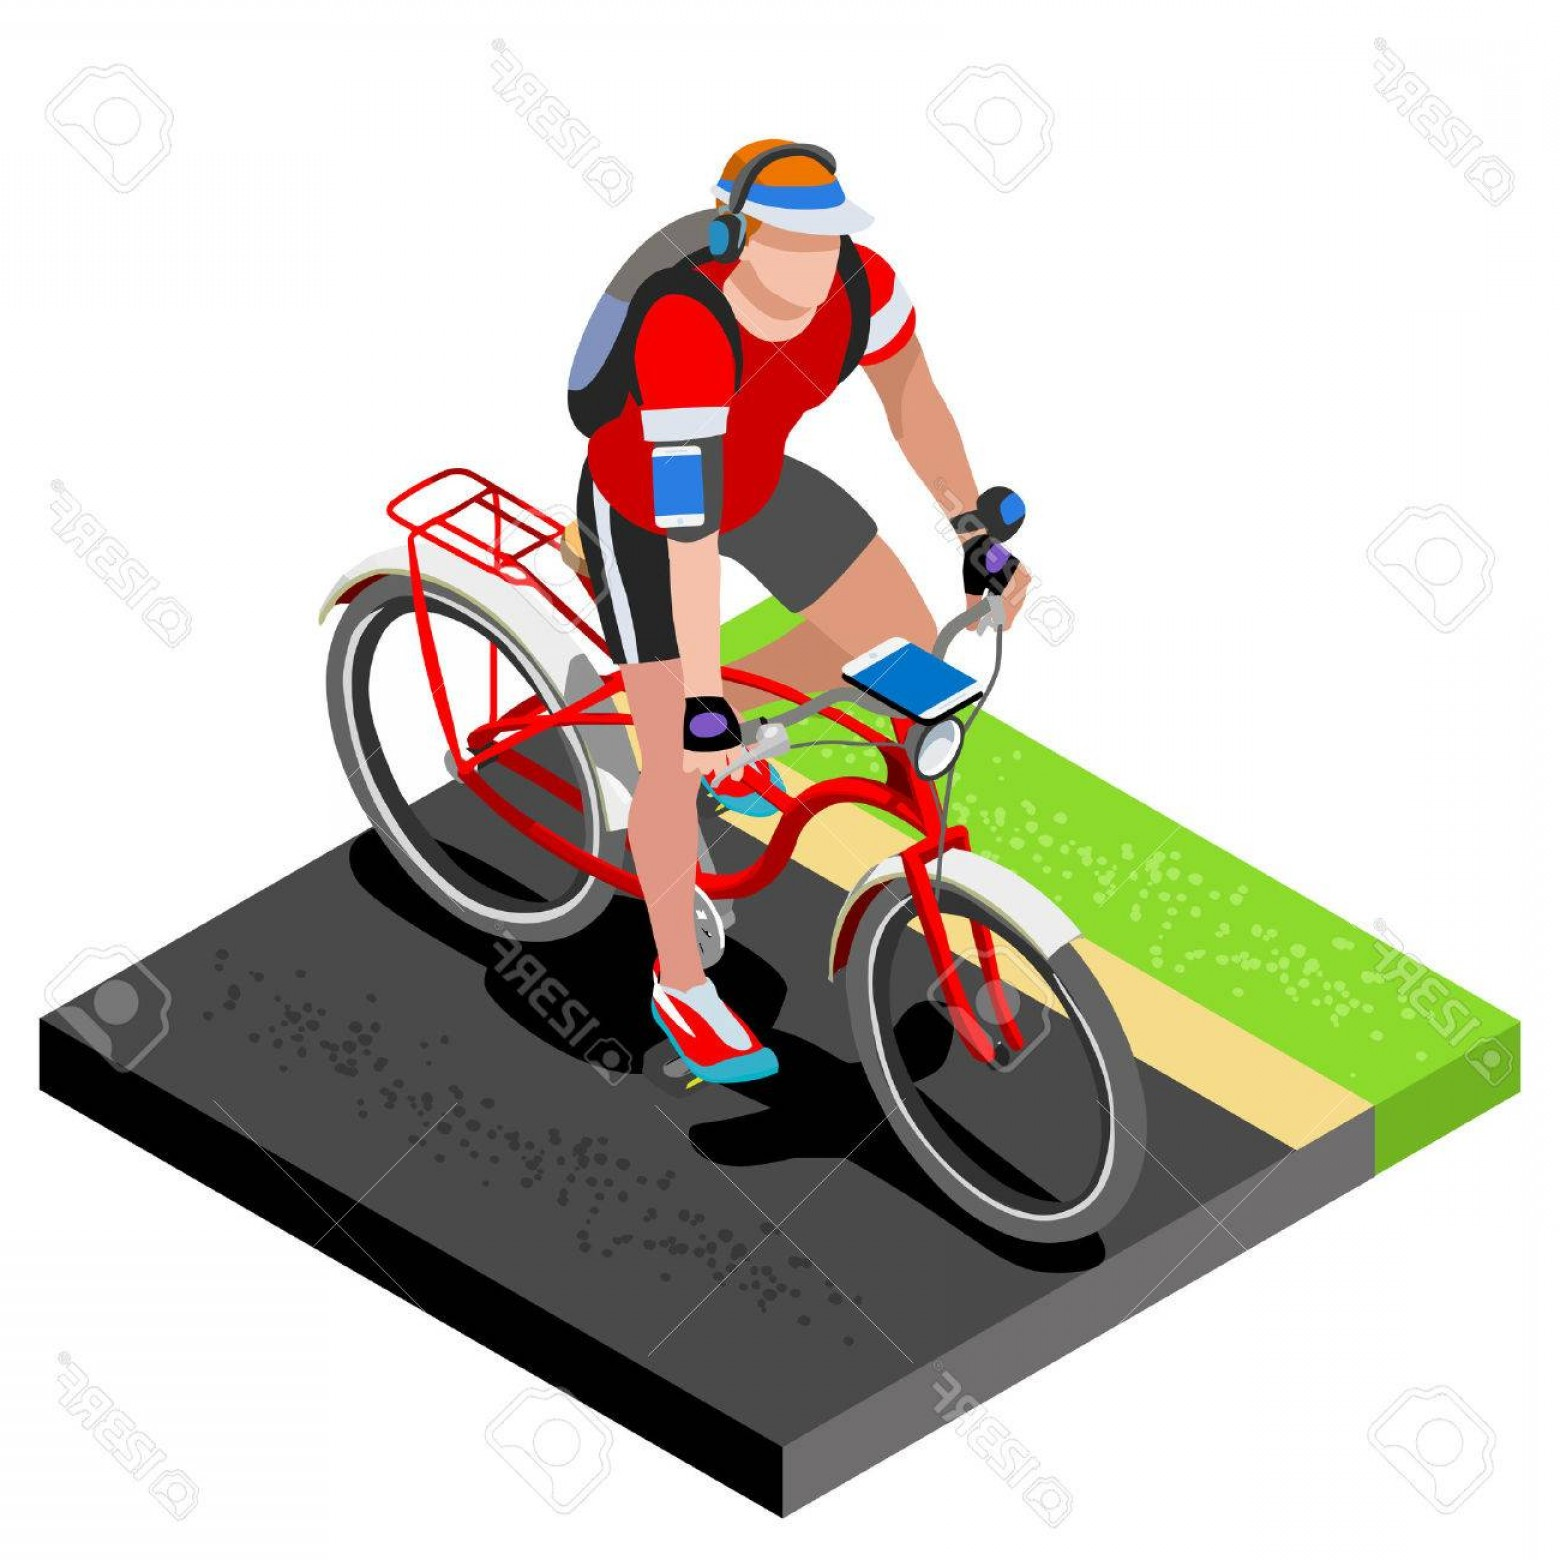 Indoor Cycling Bike Vector: Photostock Vector Road Cycling Cyclist Working Out D Flat Isometric Cyclist On Bicycle Outdoor Working Out Road Cycli